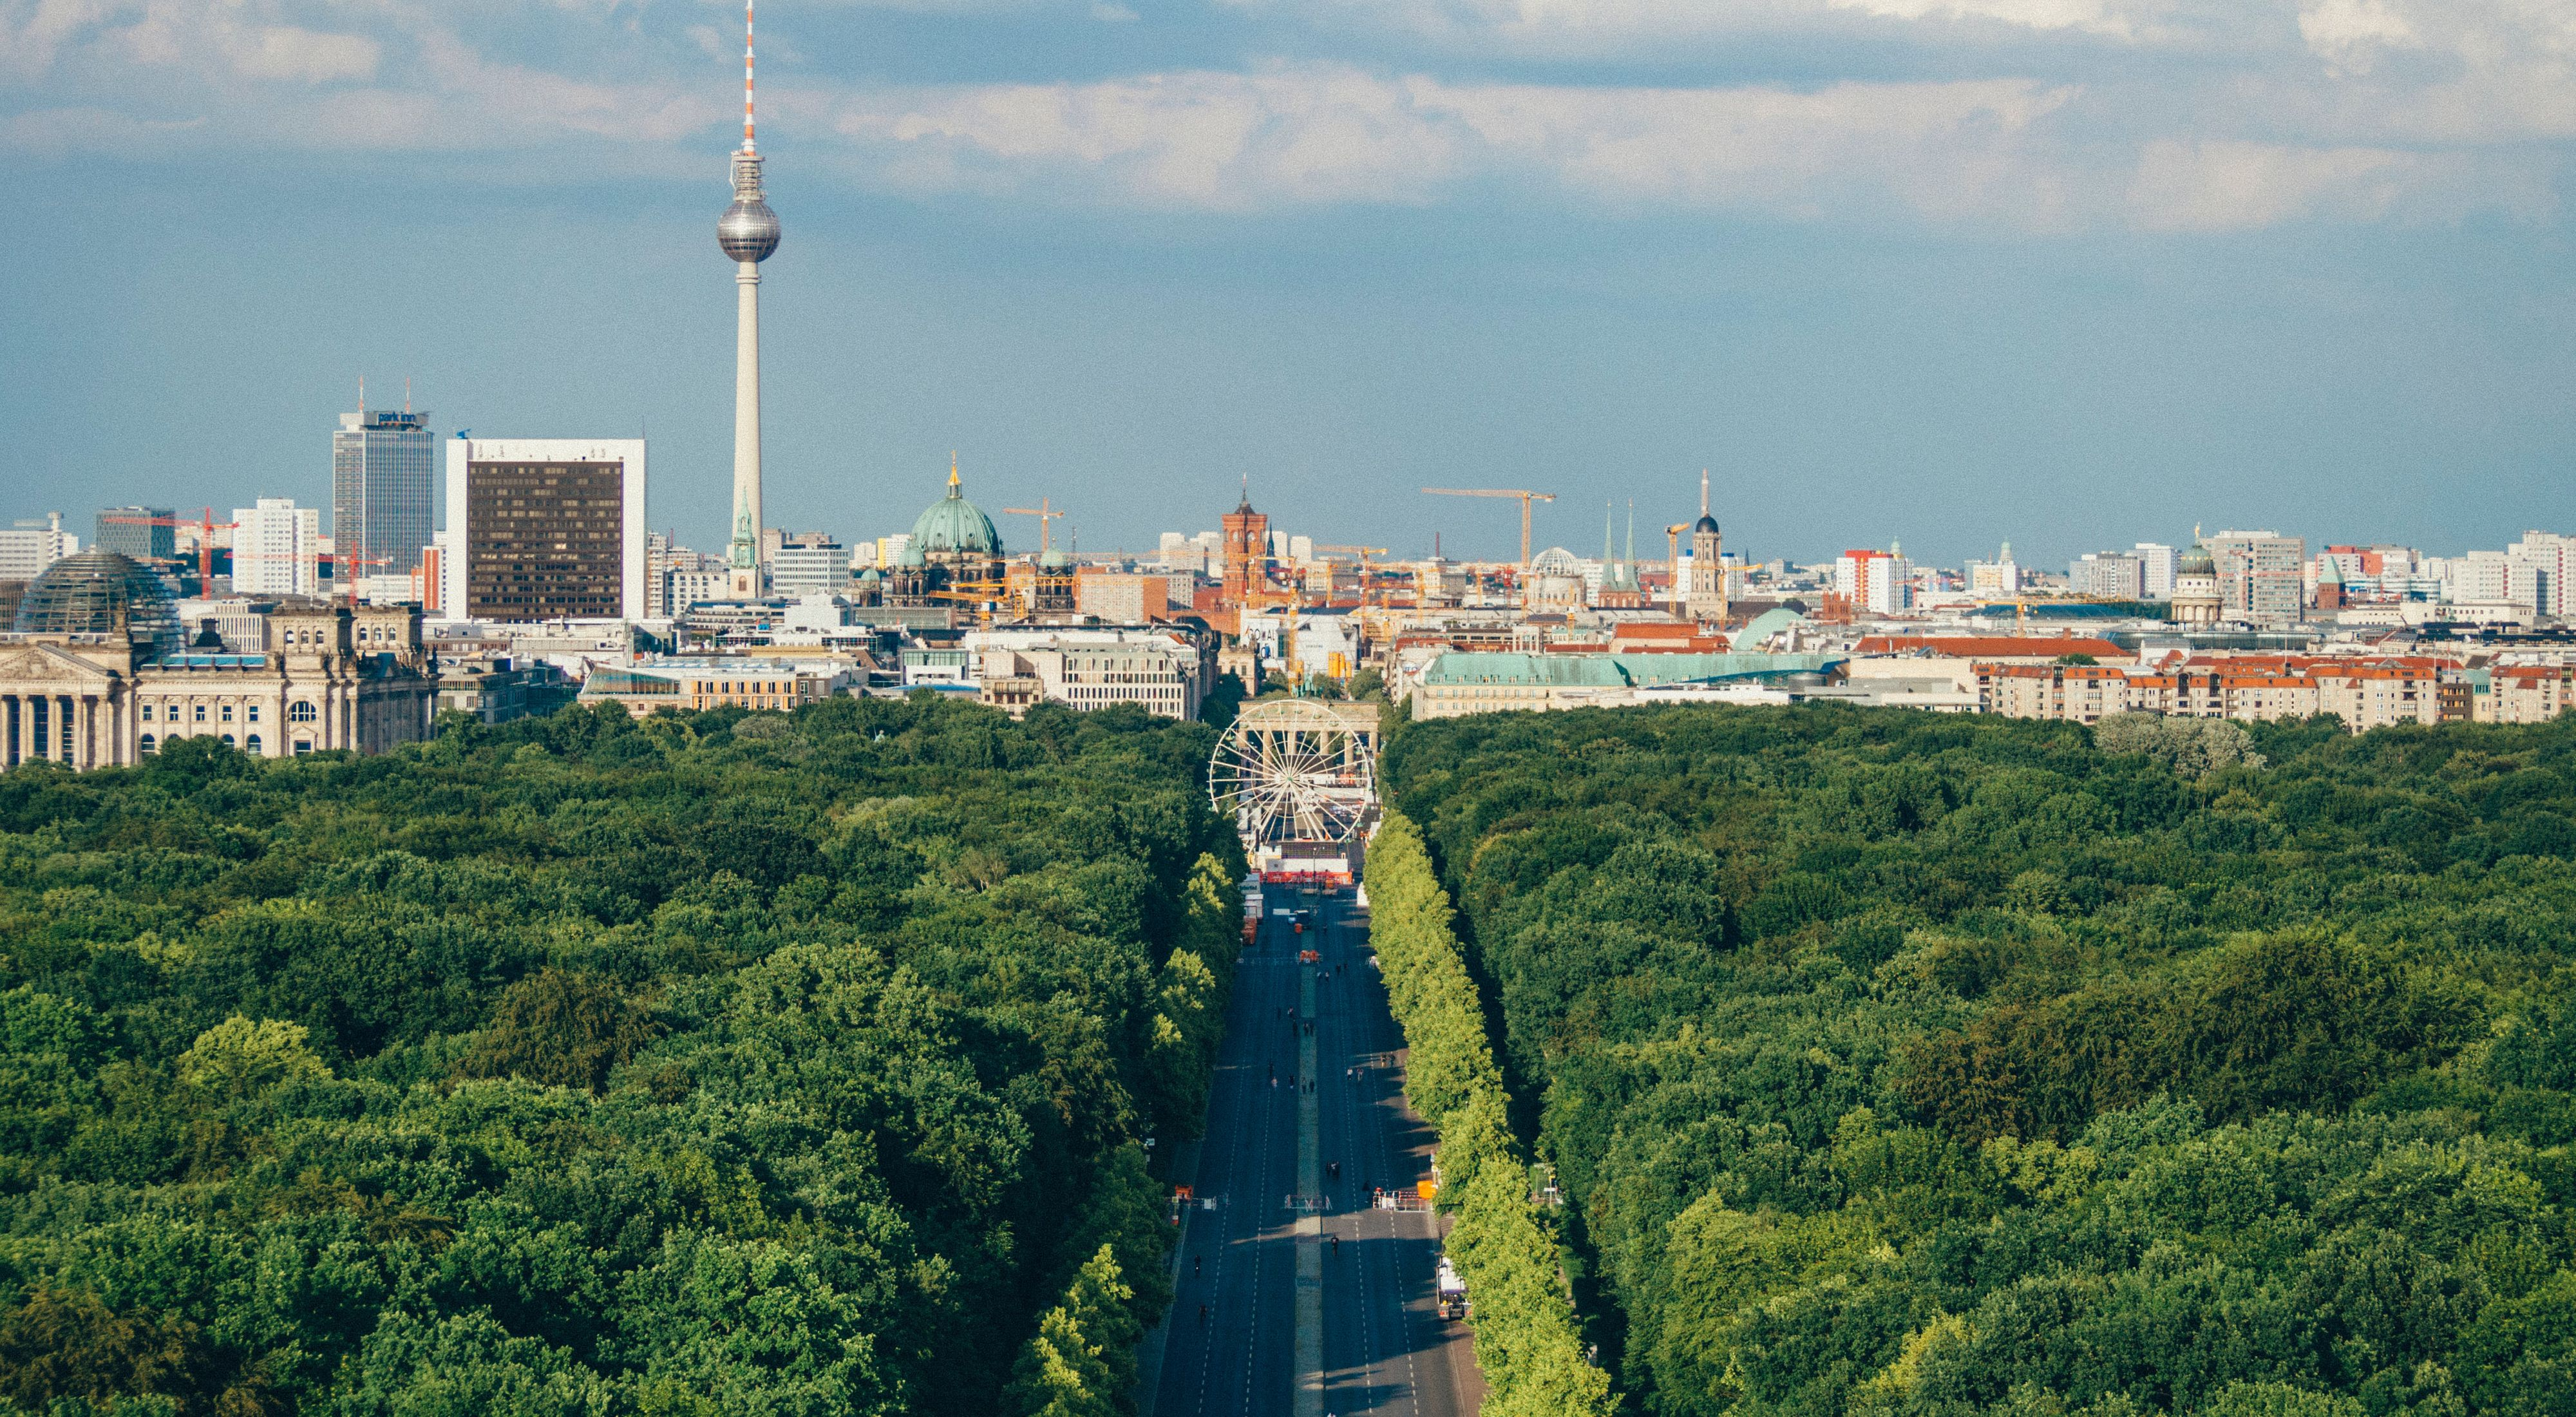 The city is bringing together key stakeholders to build a shared vision of how to protect biodiversity and use nature-based solutions to improve human well-being.